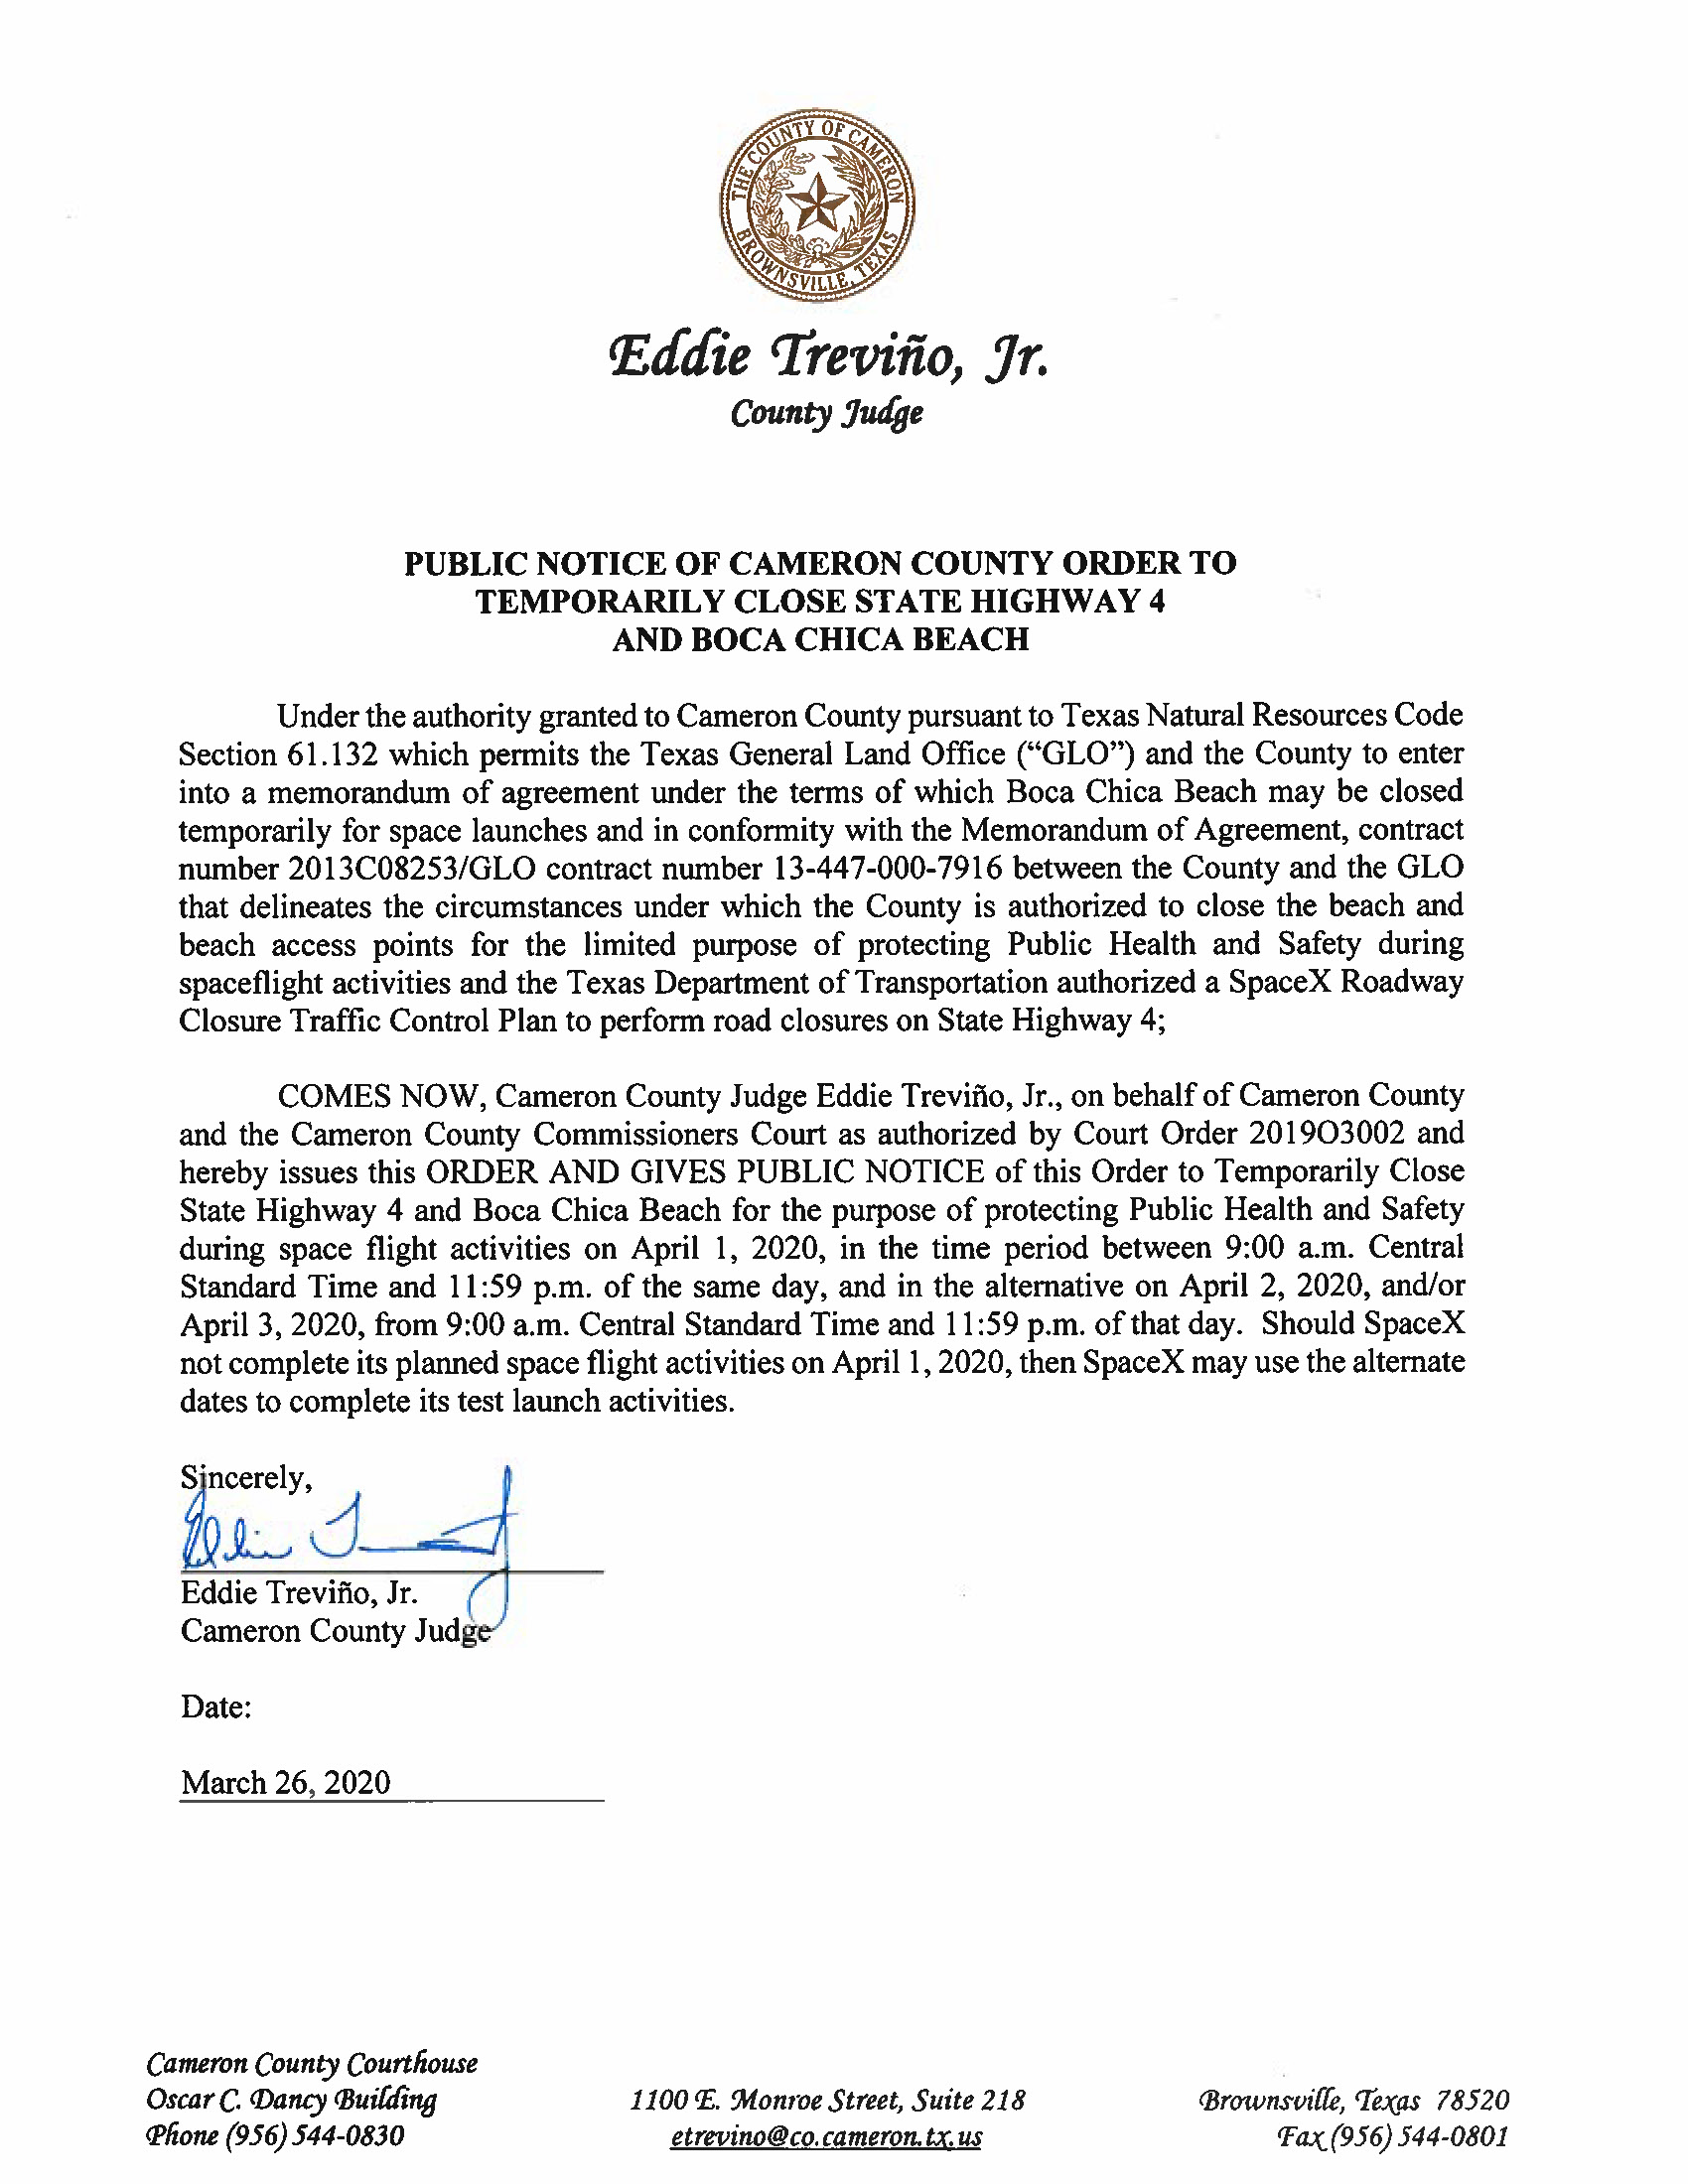 Order And Exhibit B For Beach And Road Closure.04.01.20 Page 1